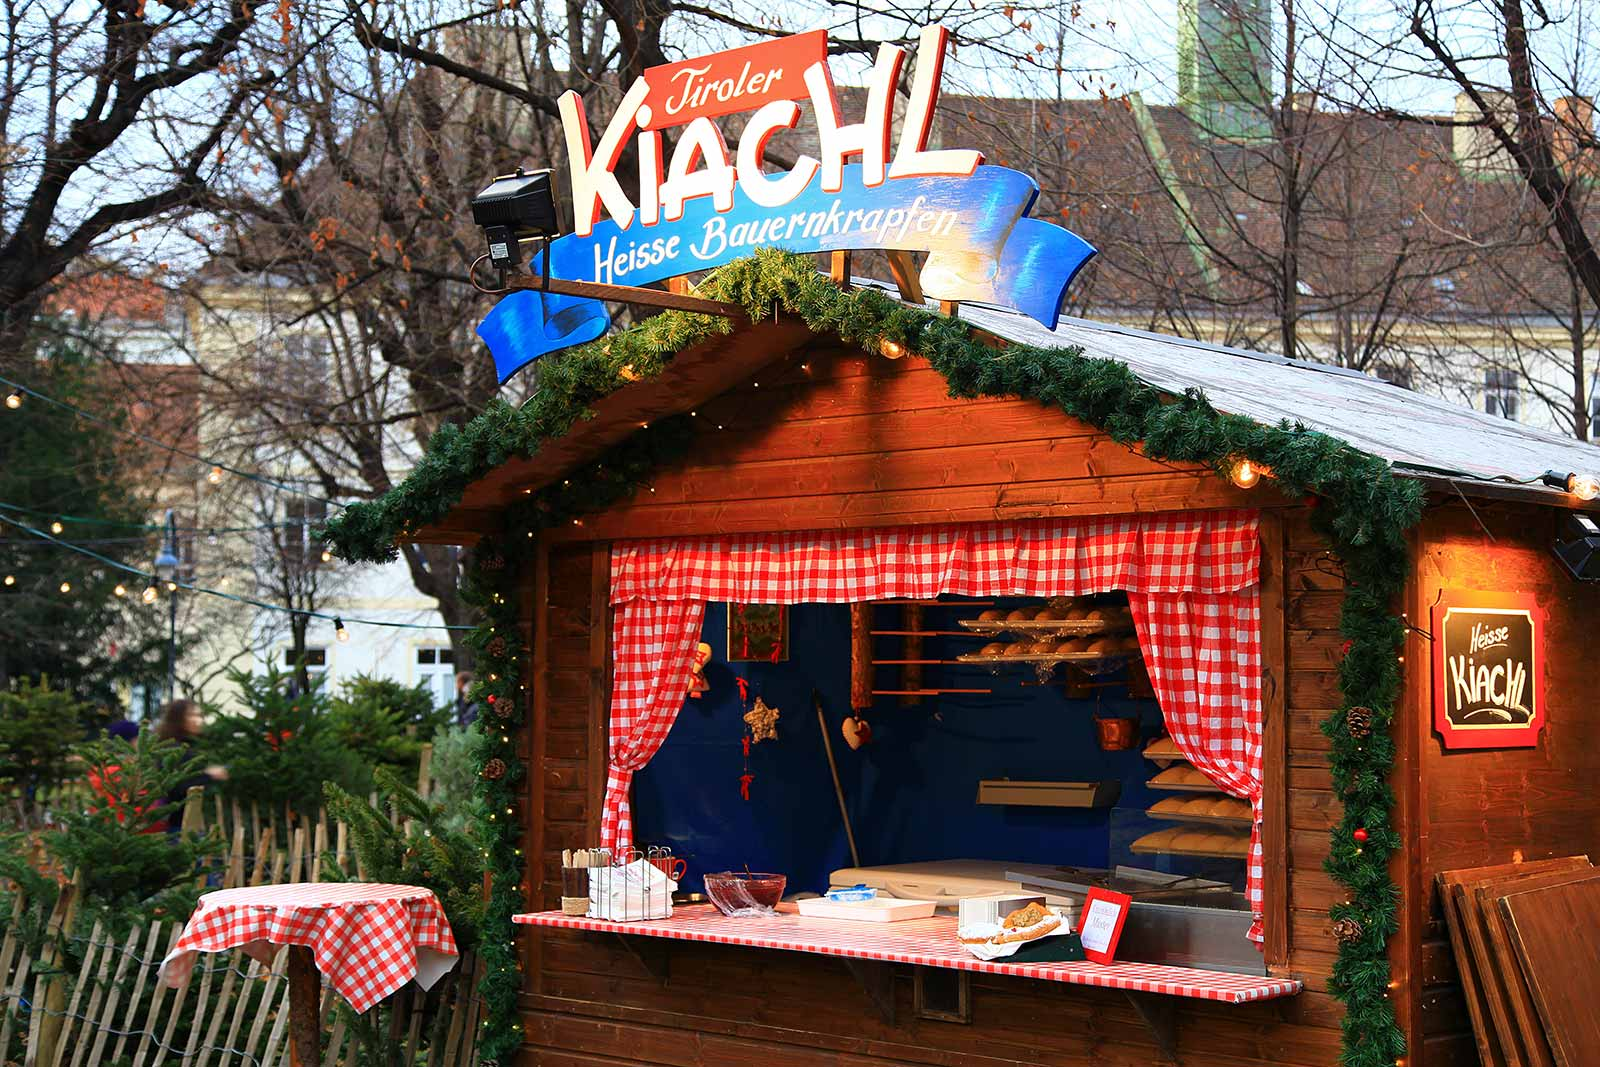 A typical food hut at a Viennese Christmas market.